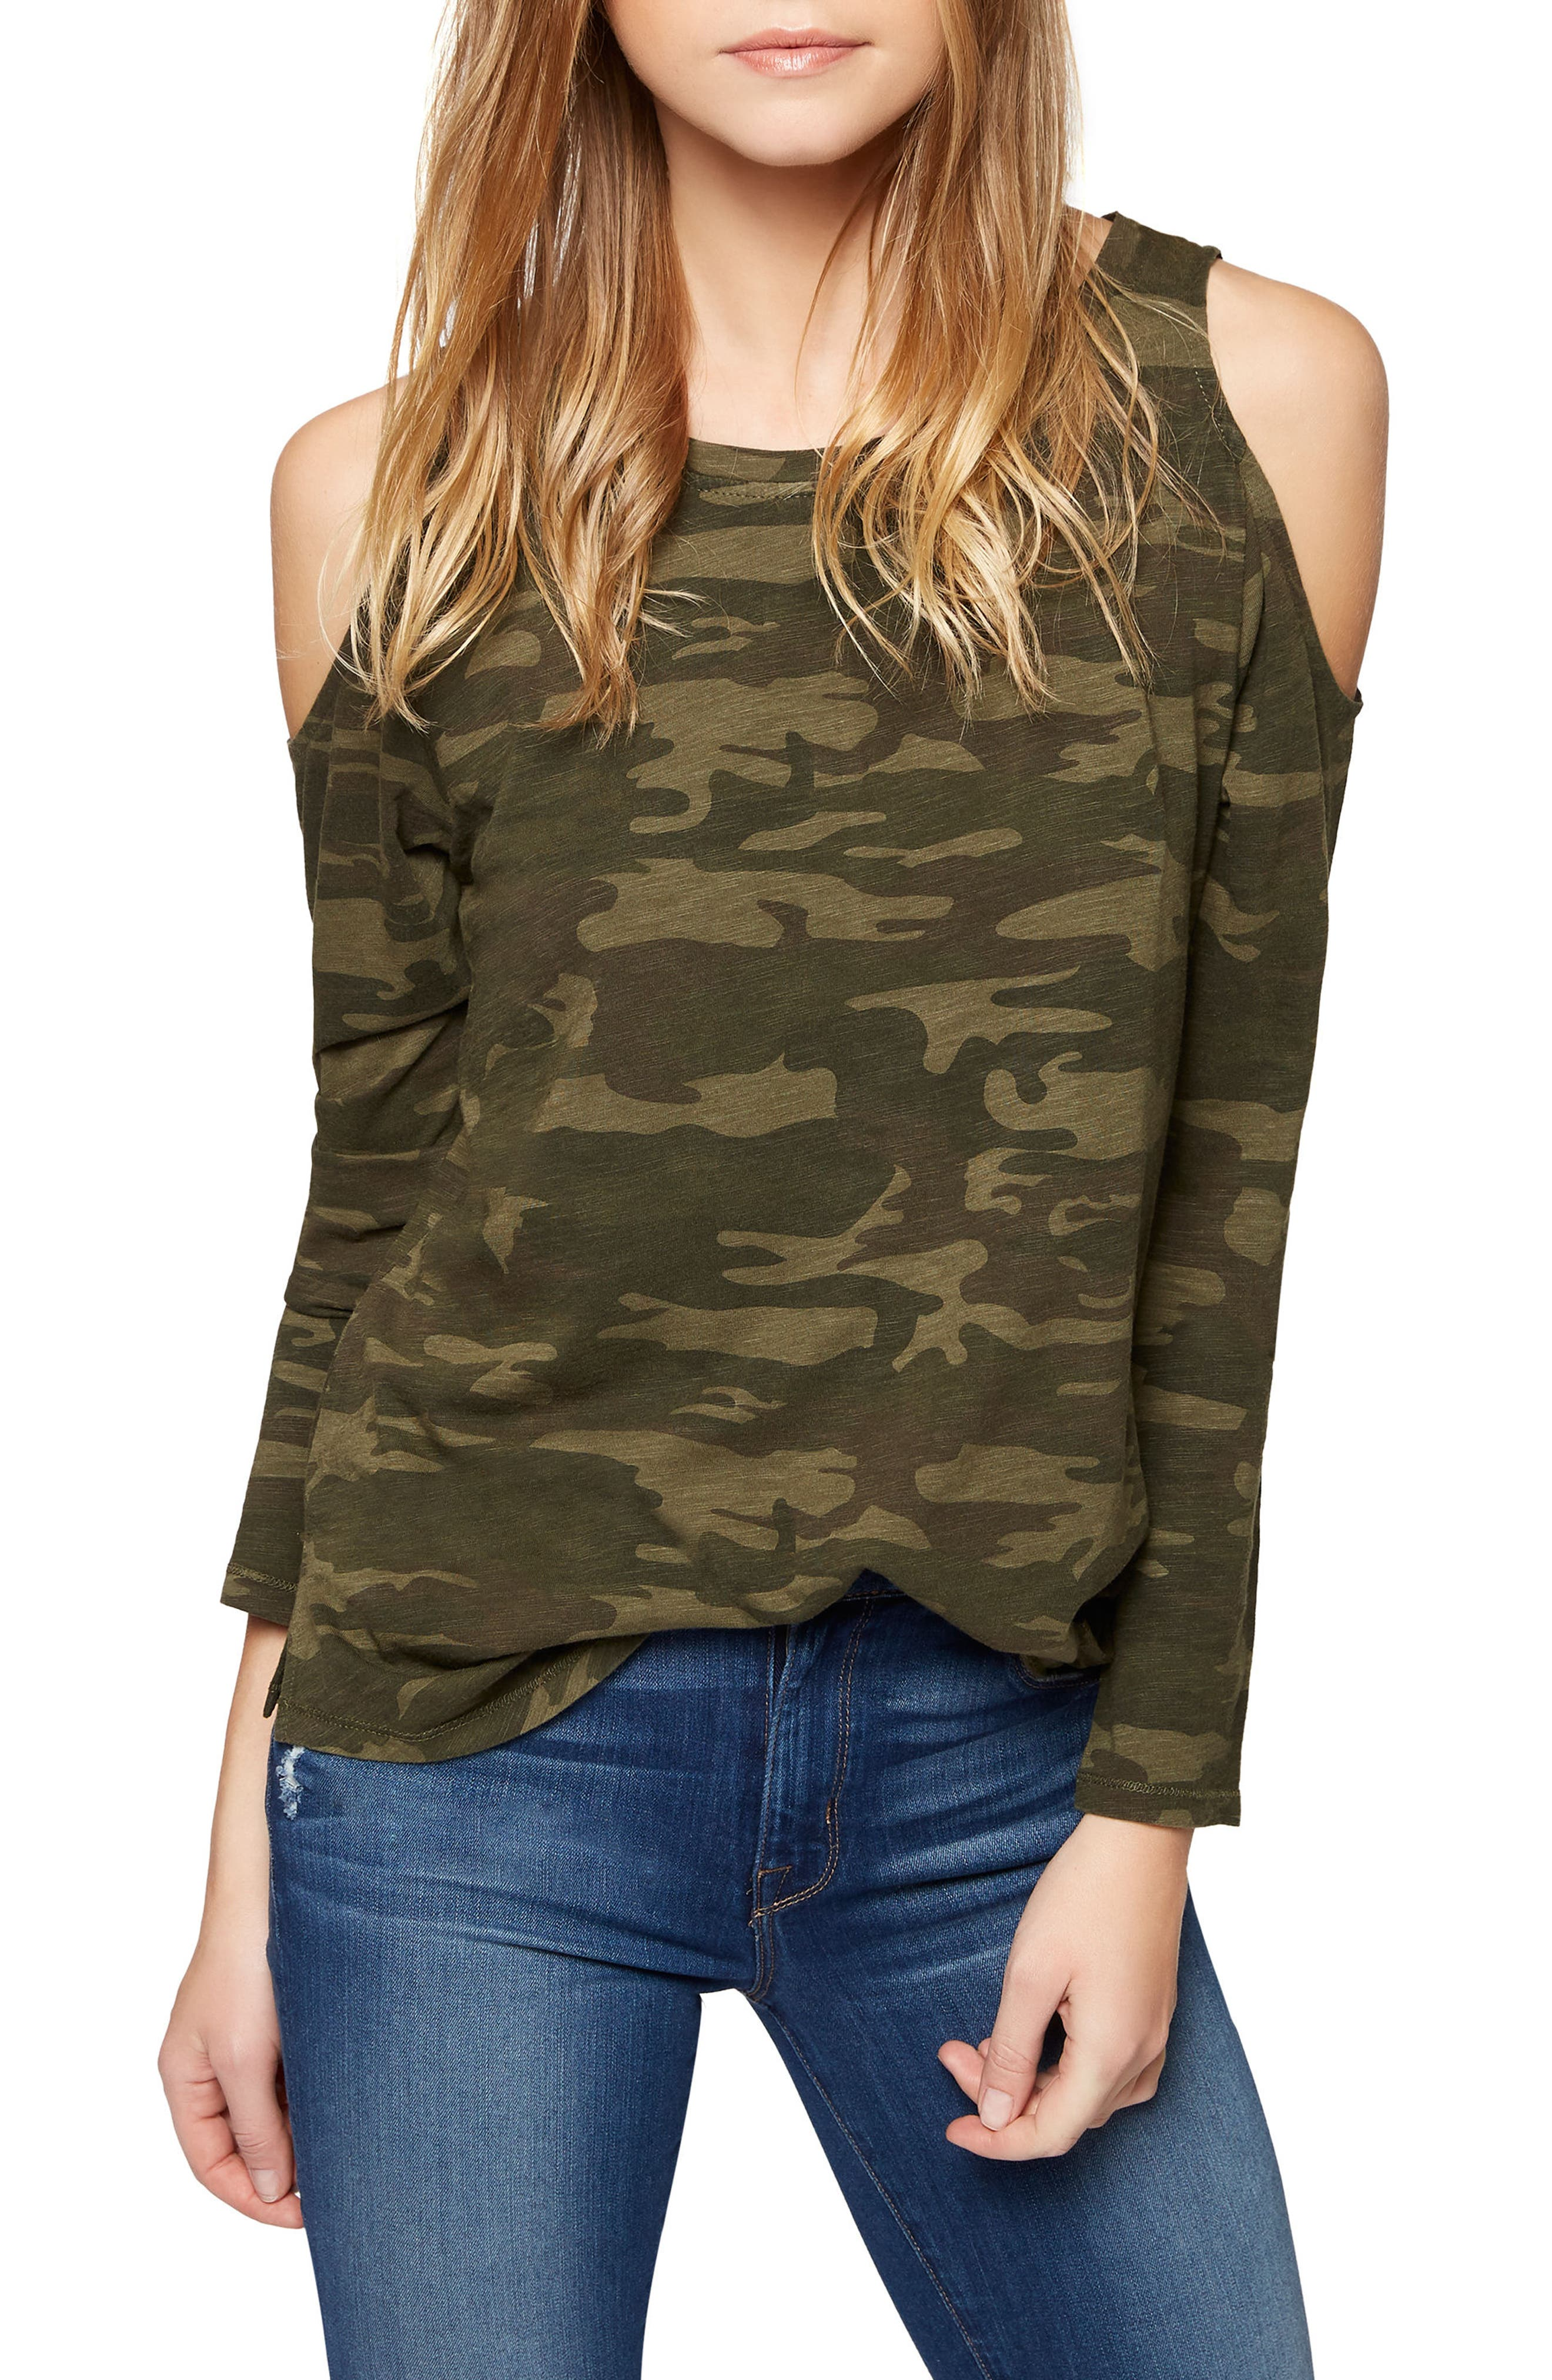 Main Image - Sanctuary Lolita Cold Shoulder Camo Tee (Regular & Petite)